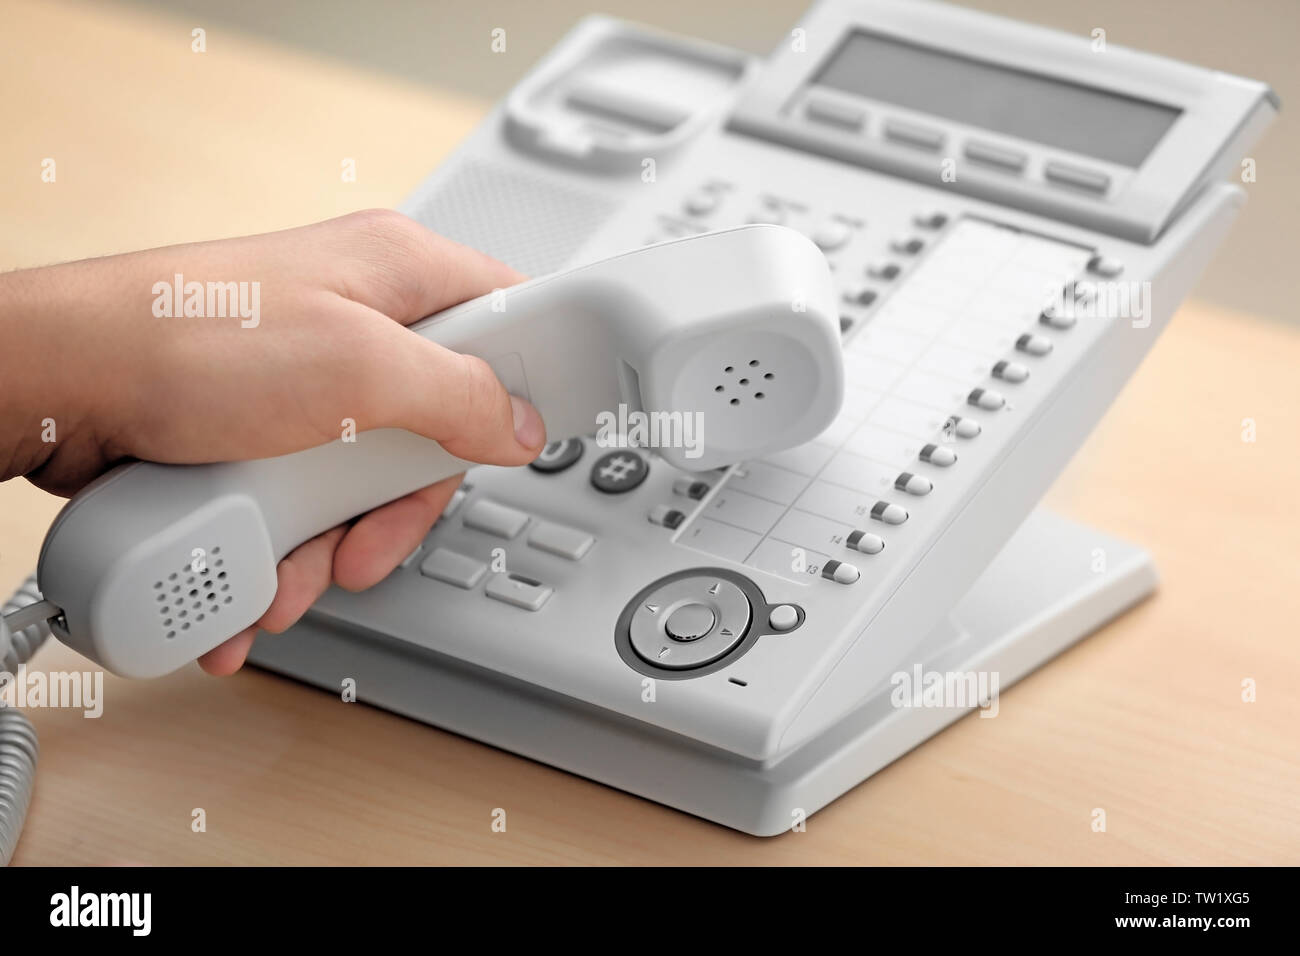 Hand of man with picked up receiver dialing telephone number in office - Stock Image